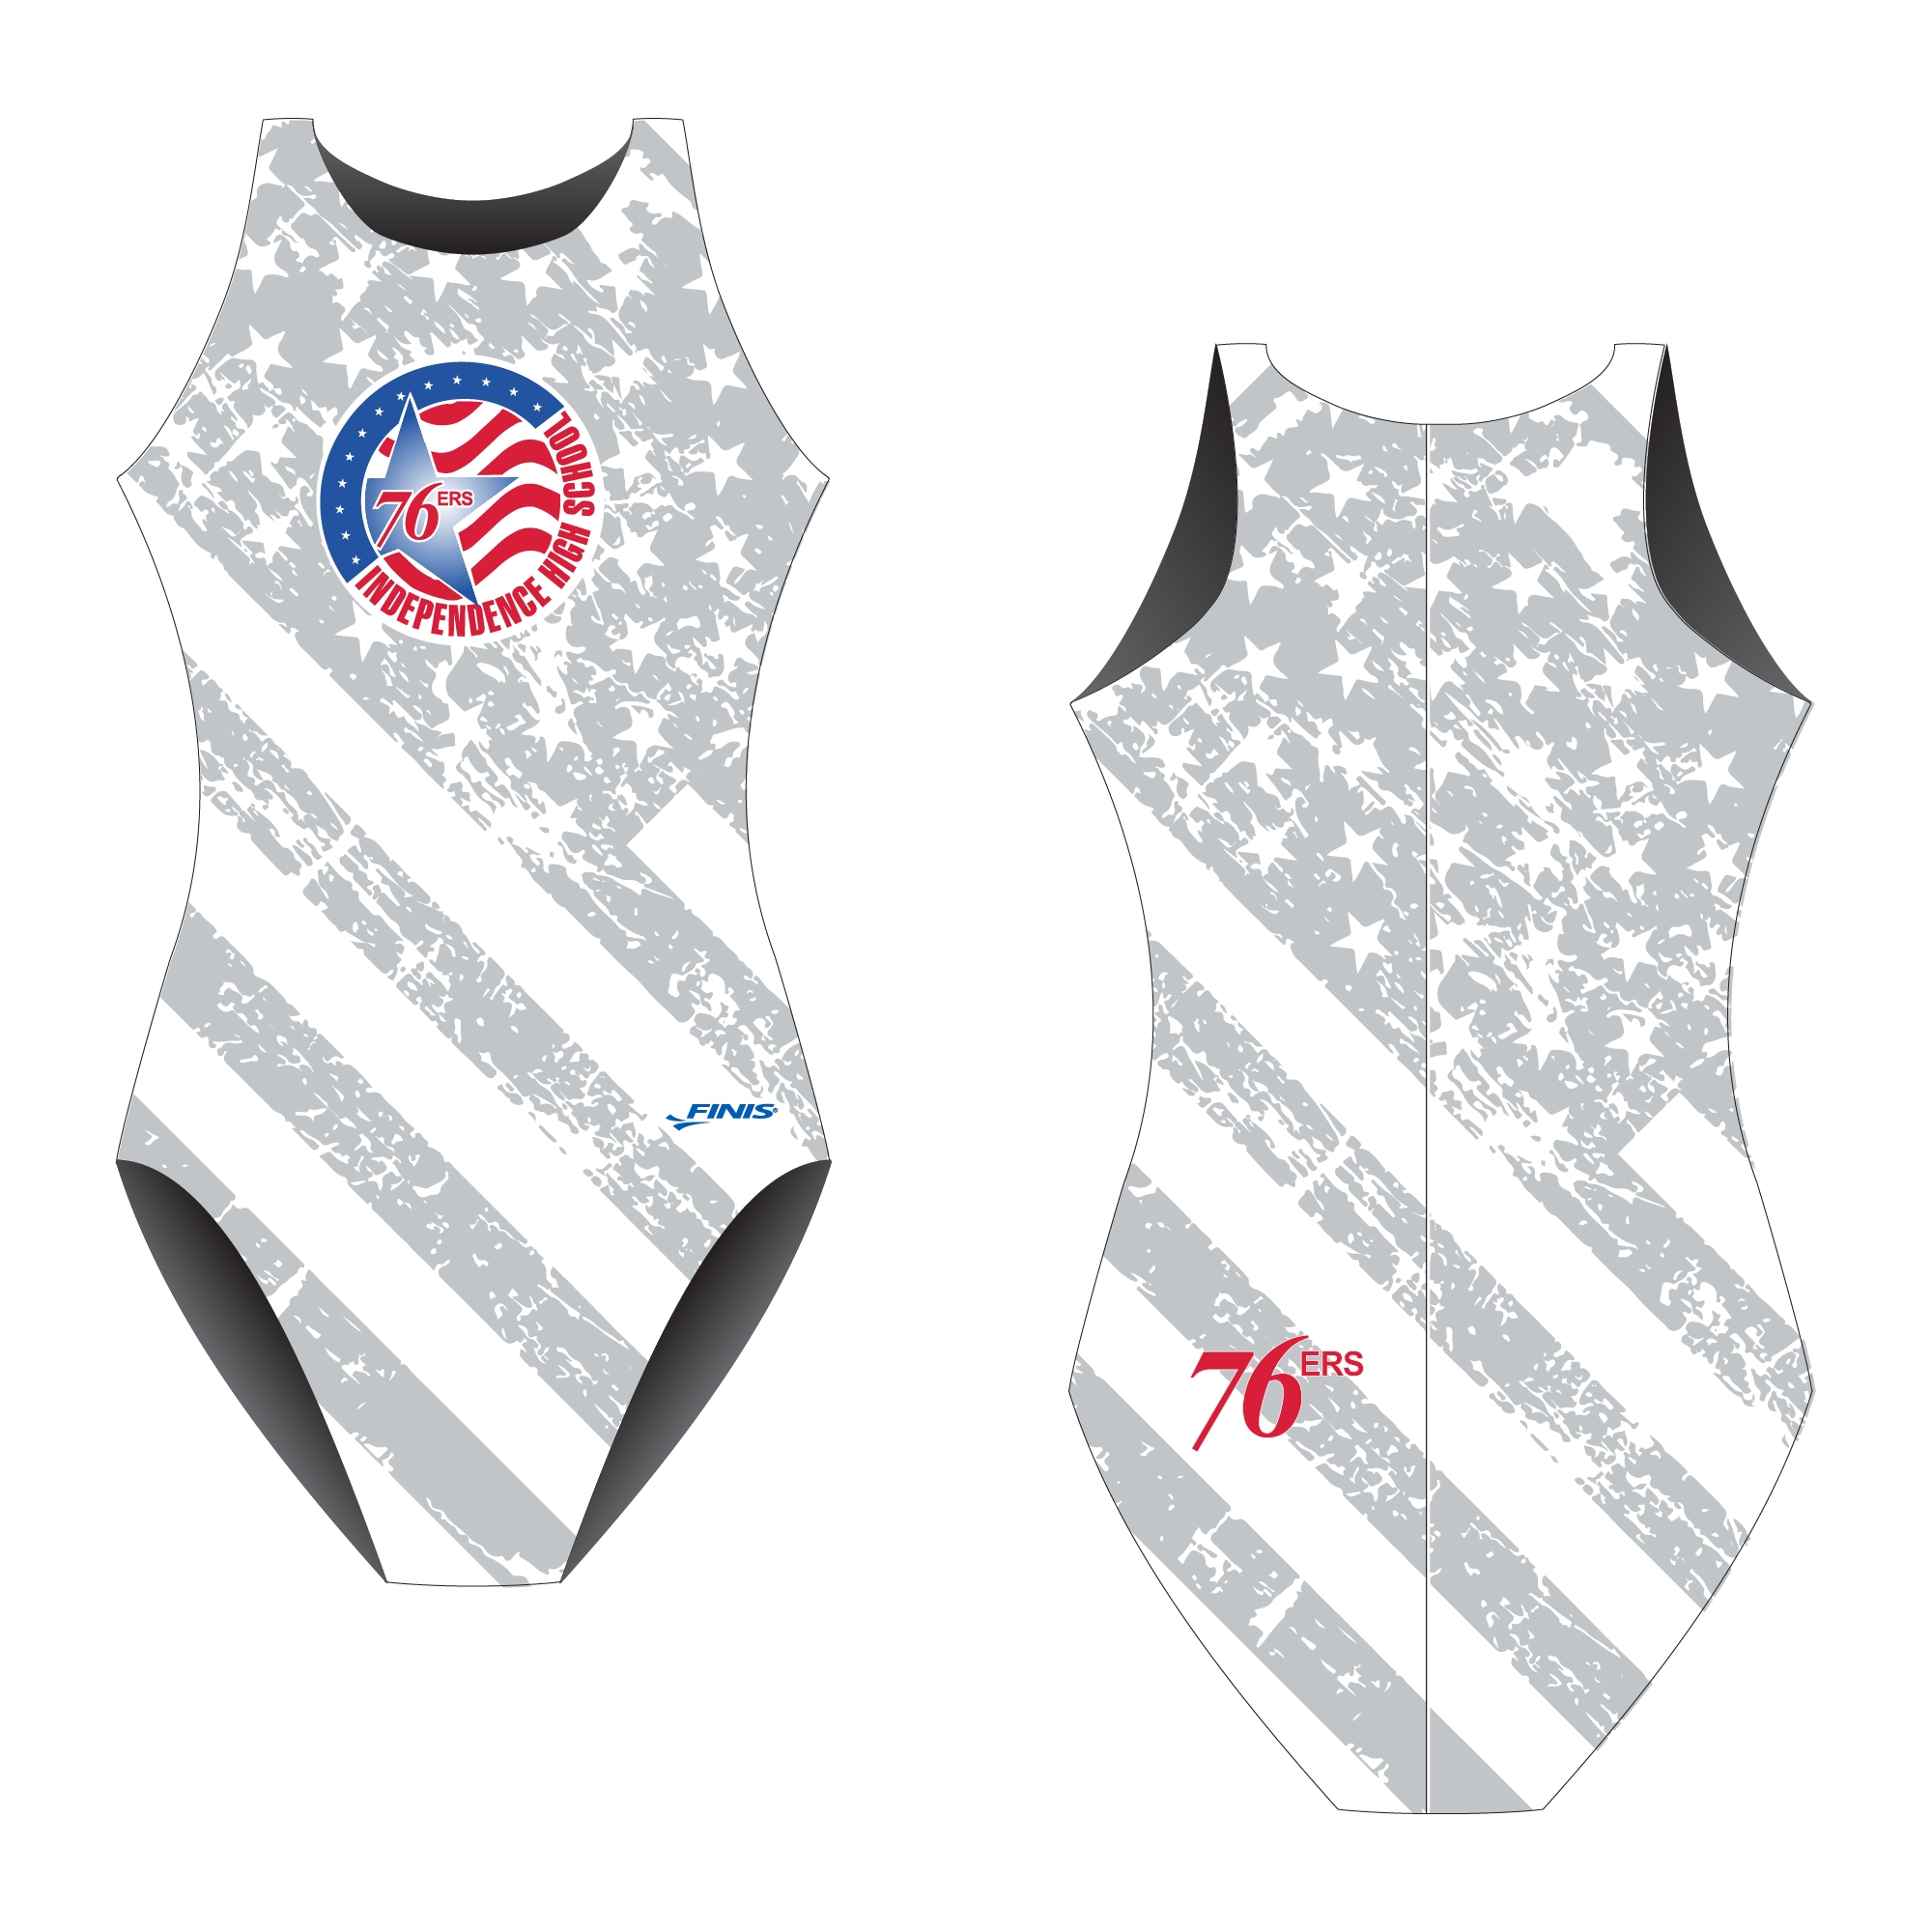 76ers Independece high school water polo design proof on finis custom swimsuit